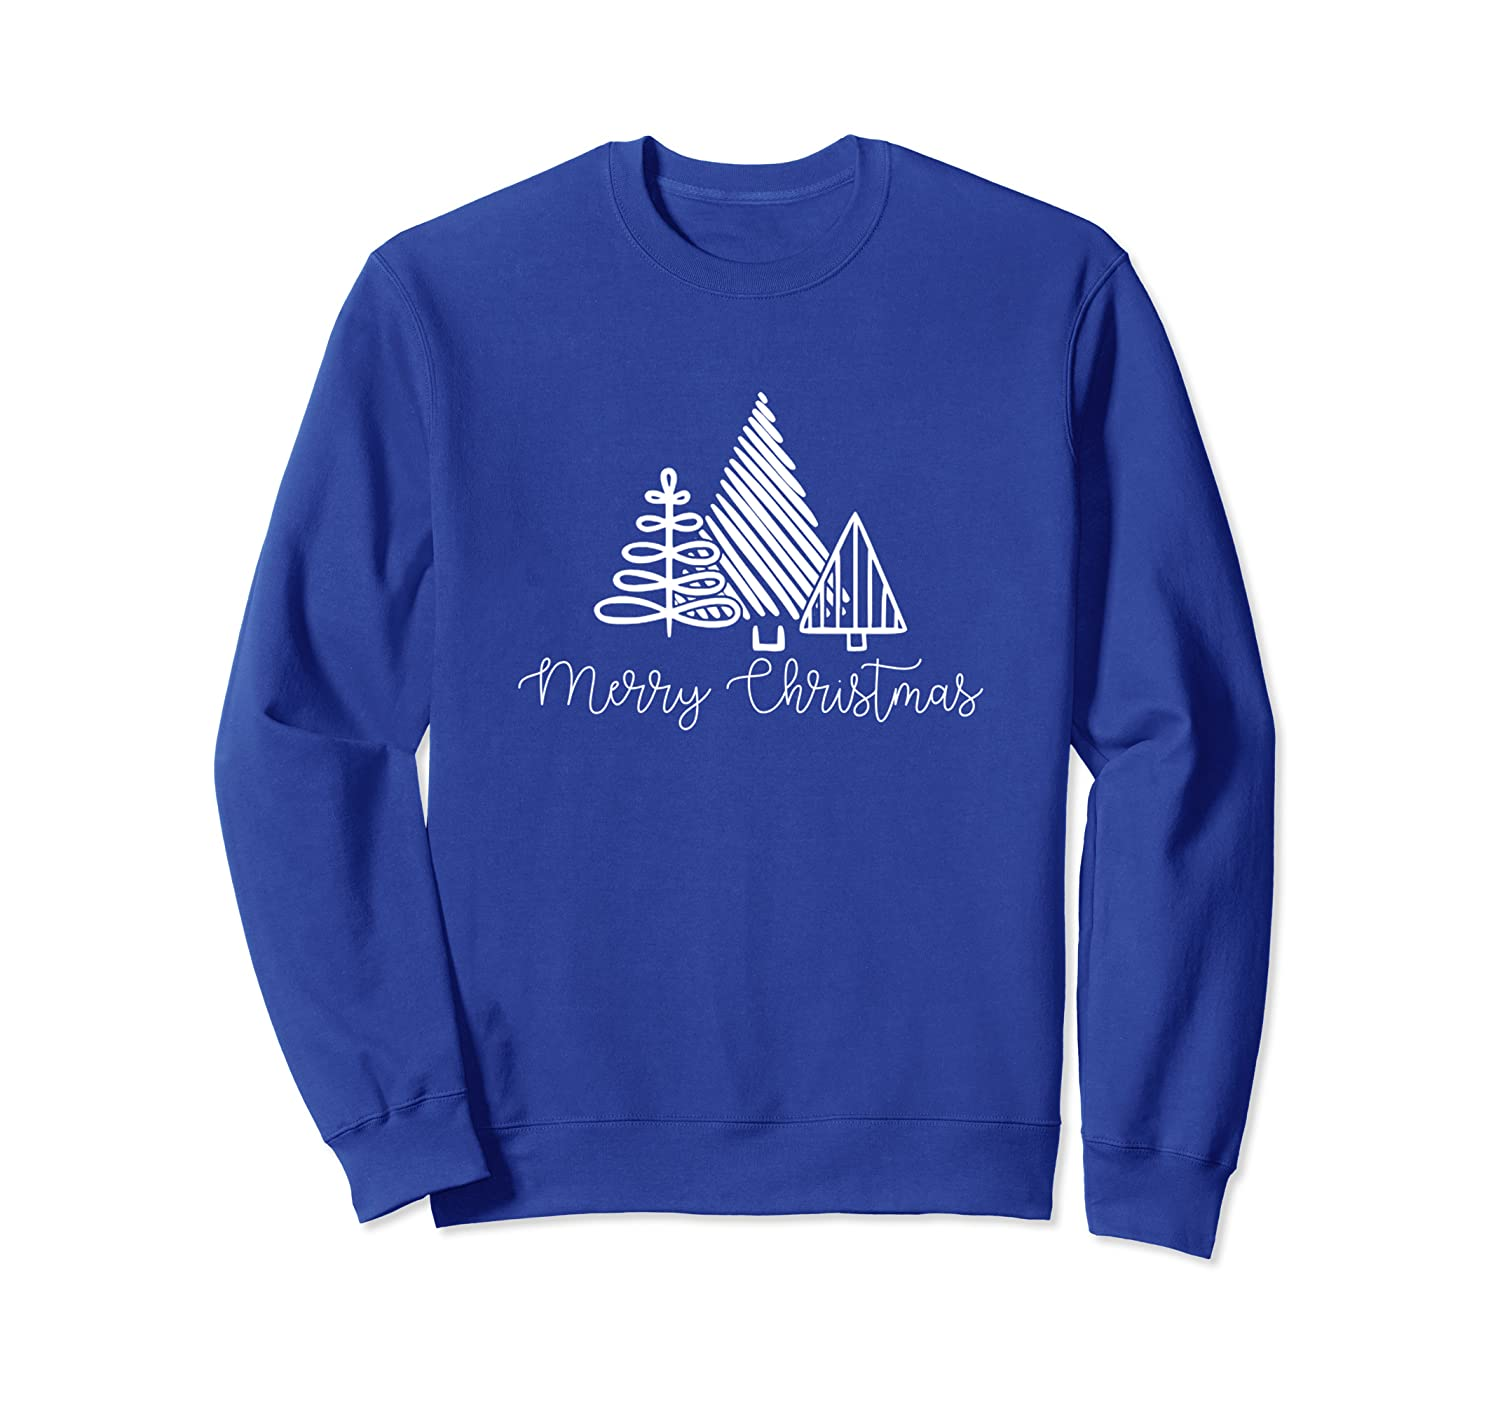 Merry Christmas Trees Gift for Her Cute Simple Family Sweatshirt